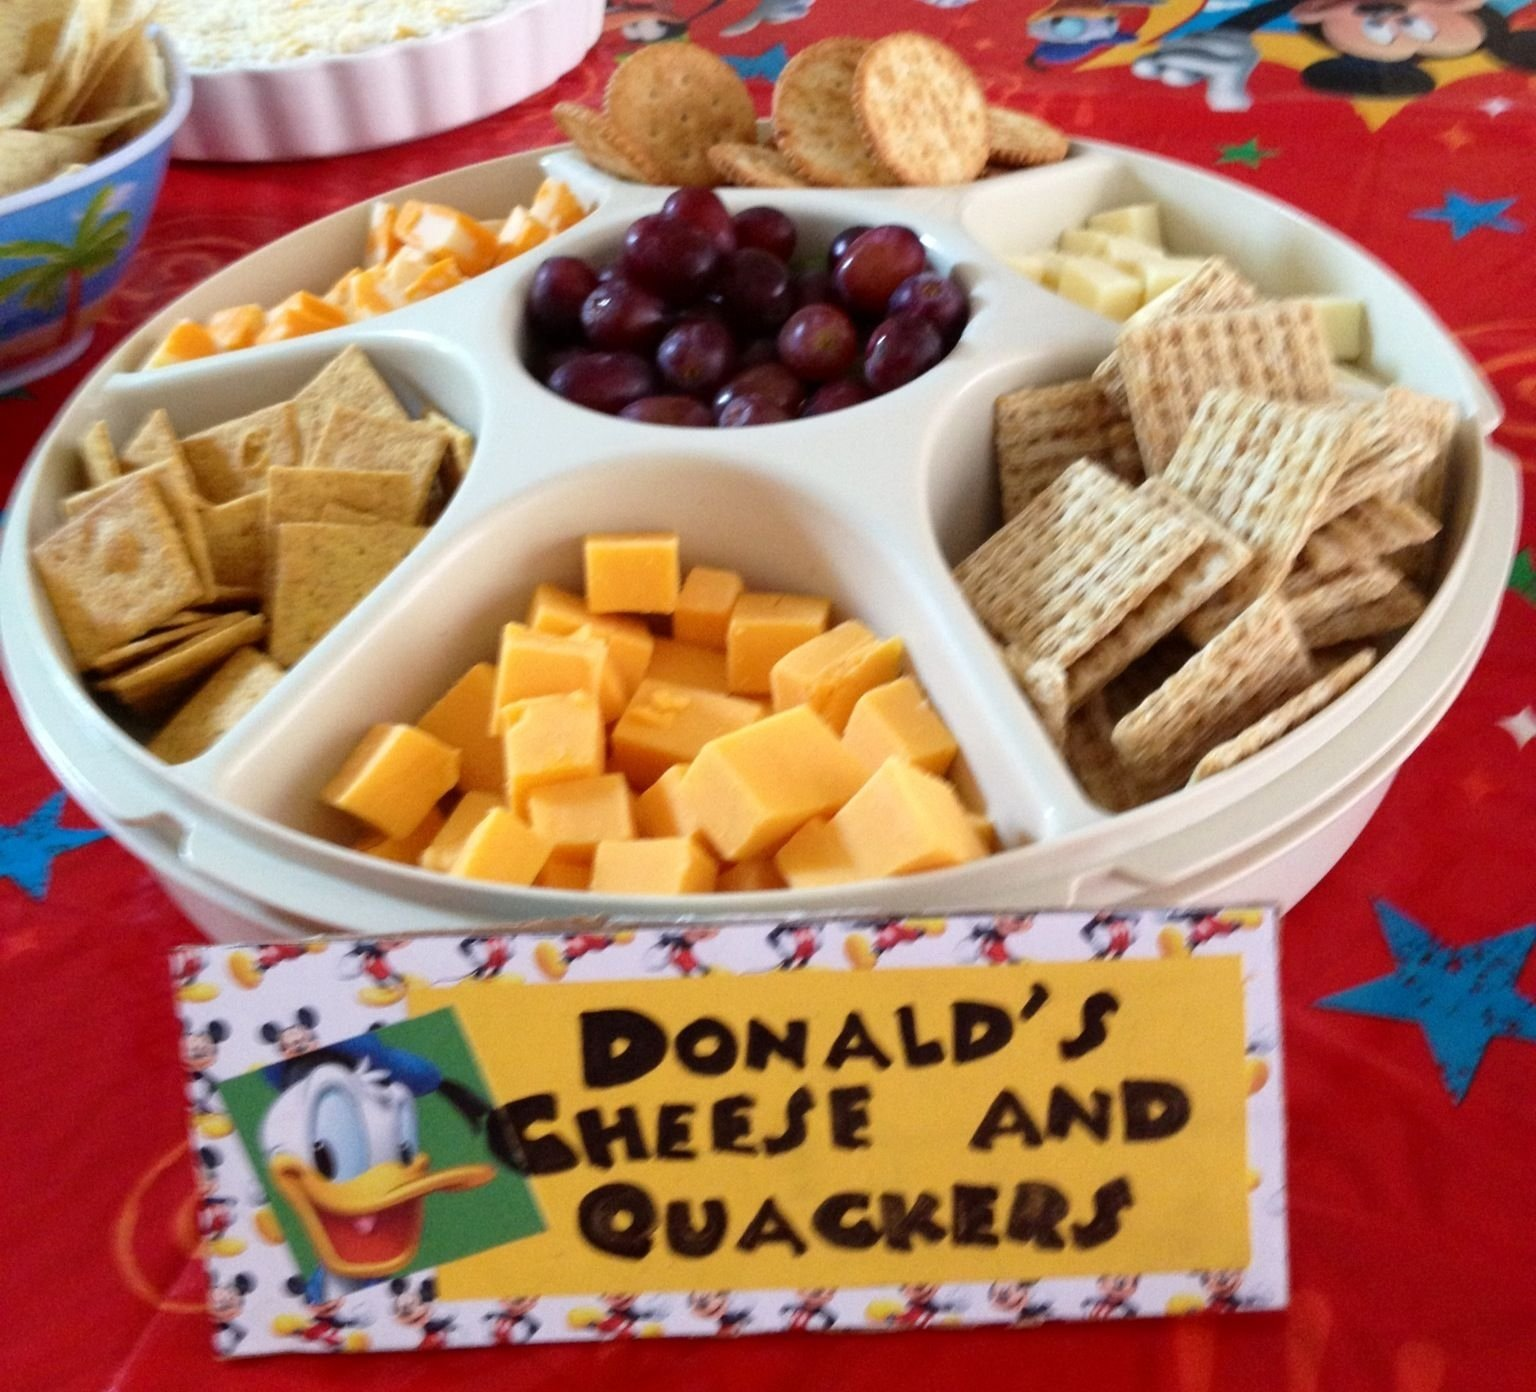 10 Most Recommended Mickey Mouse Clubhouse Food Ideas donalds cheese and quackers kids party pinterest birthday 5 2020